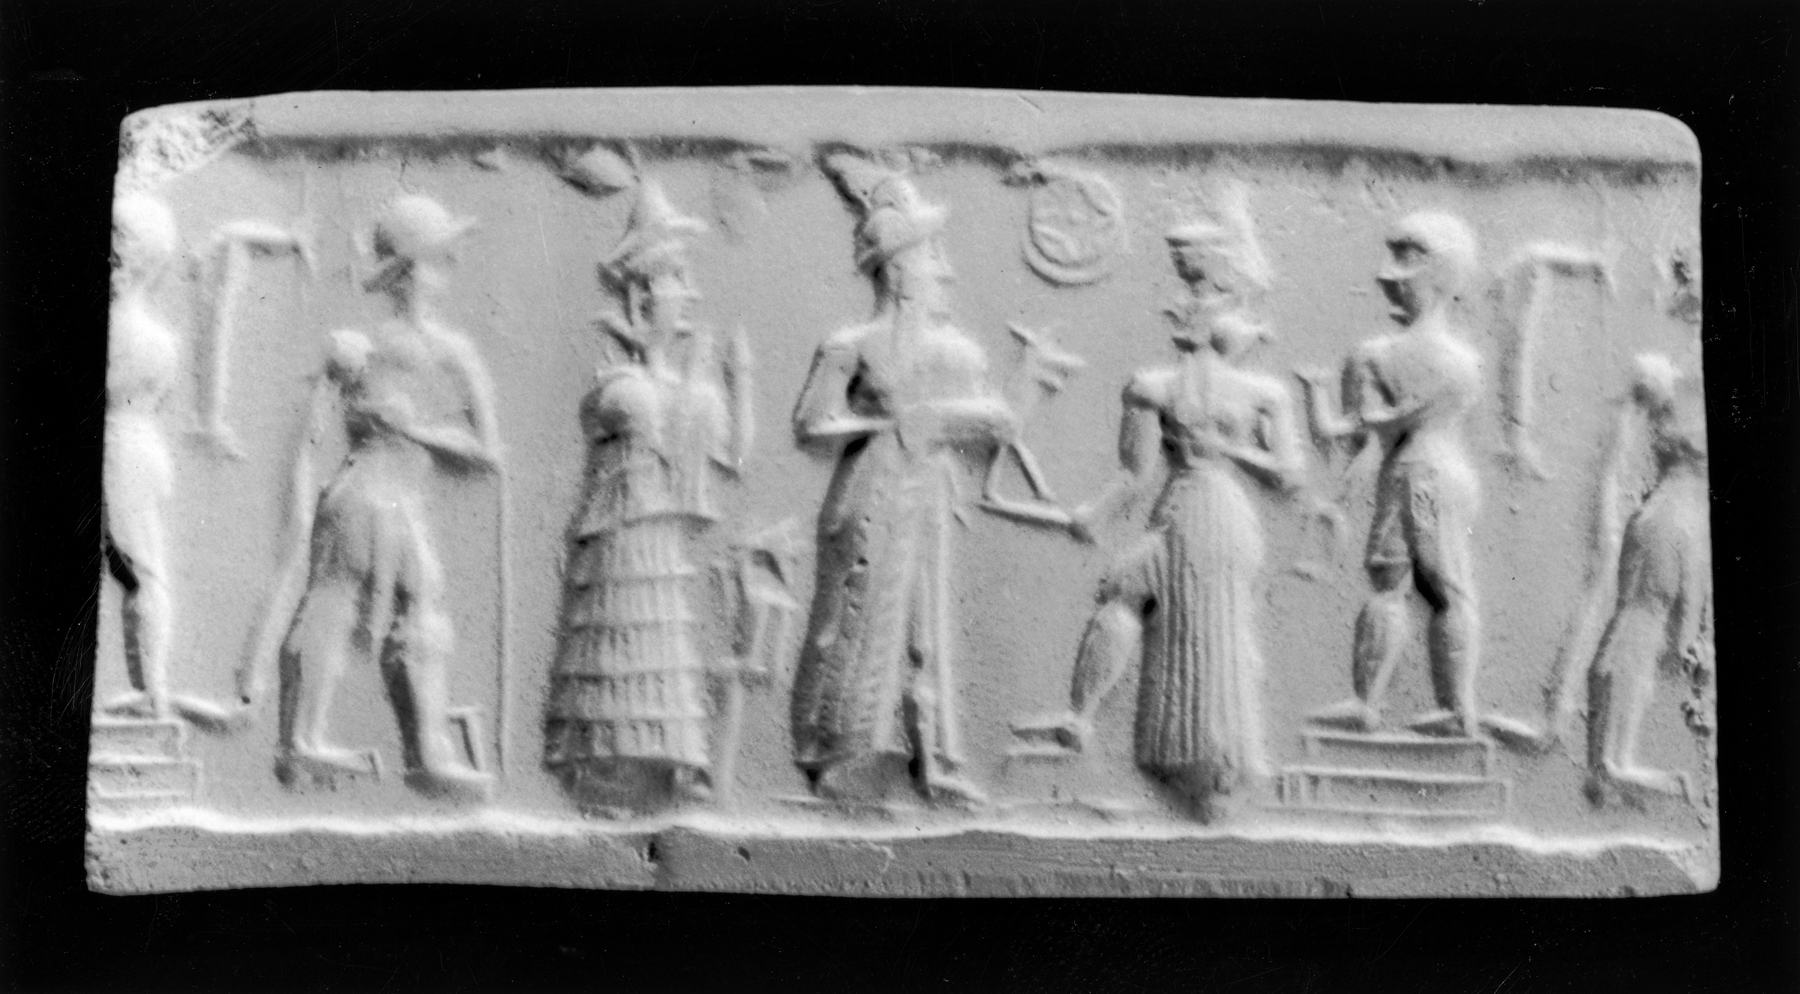 external image Mesopotamian_-_Cylinder_Seal_with_a_Deity_Accepting_an_Offering_-_Walters_42713.jpg